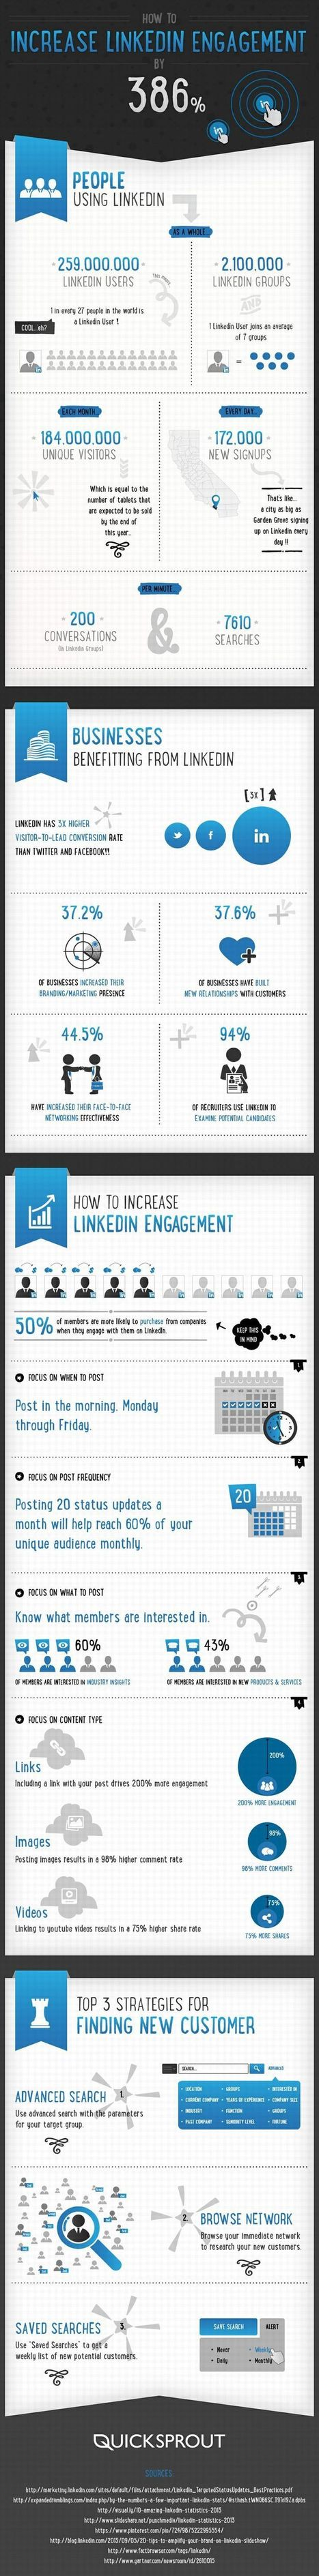 How to Increase Linkedin engagement by 386% [In... | Digital Marketing | Scoop.it